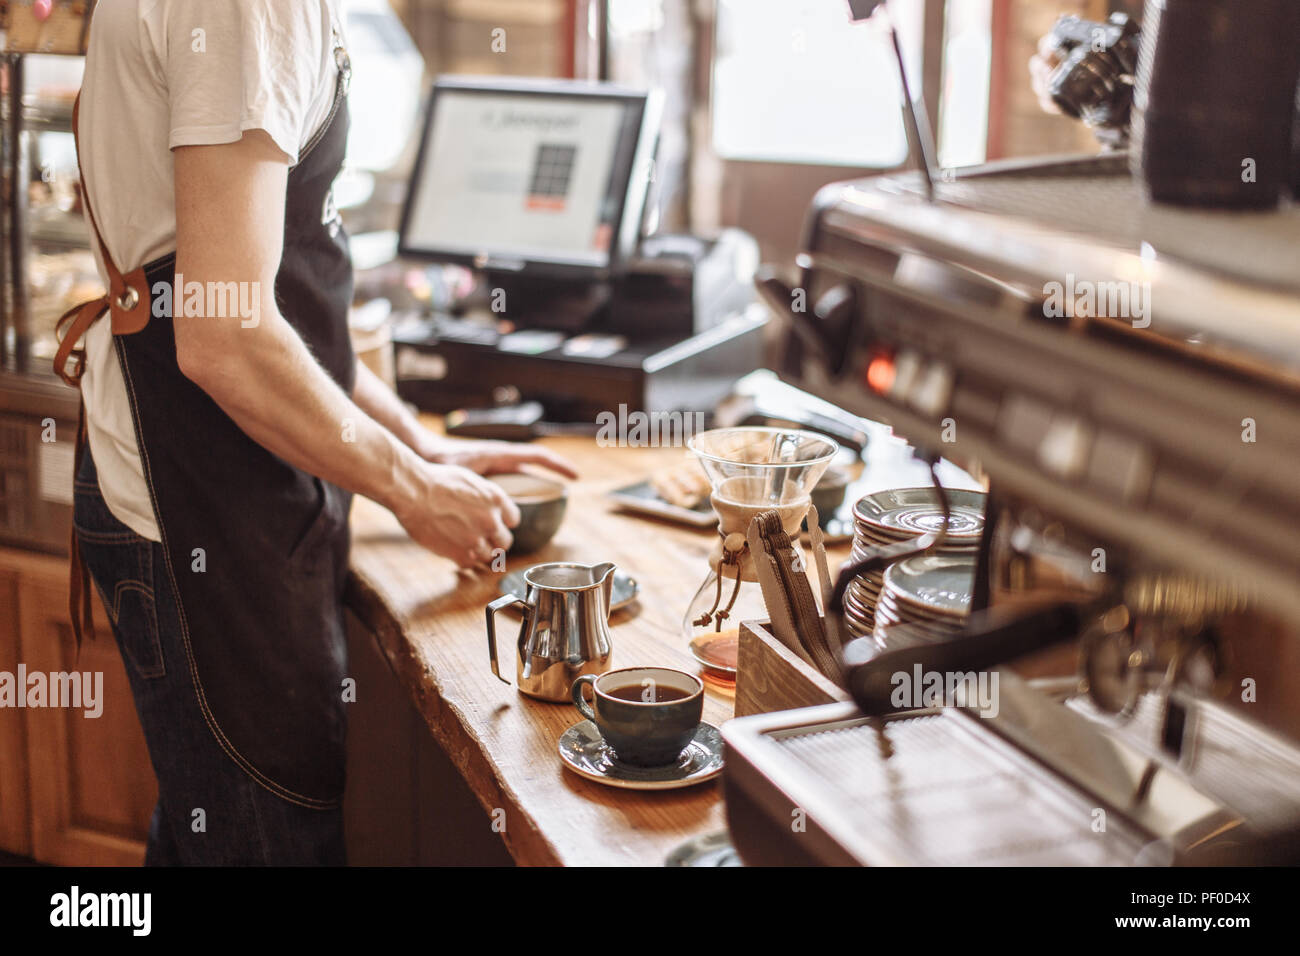 salesman is making espresso for clients in the coffee house - Stock Image